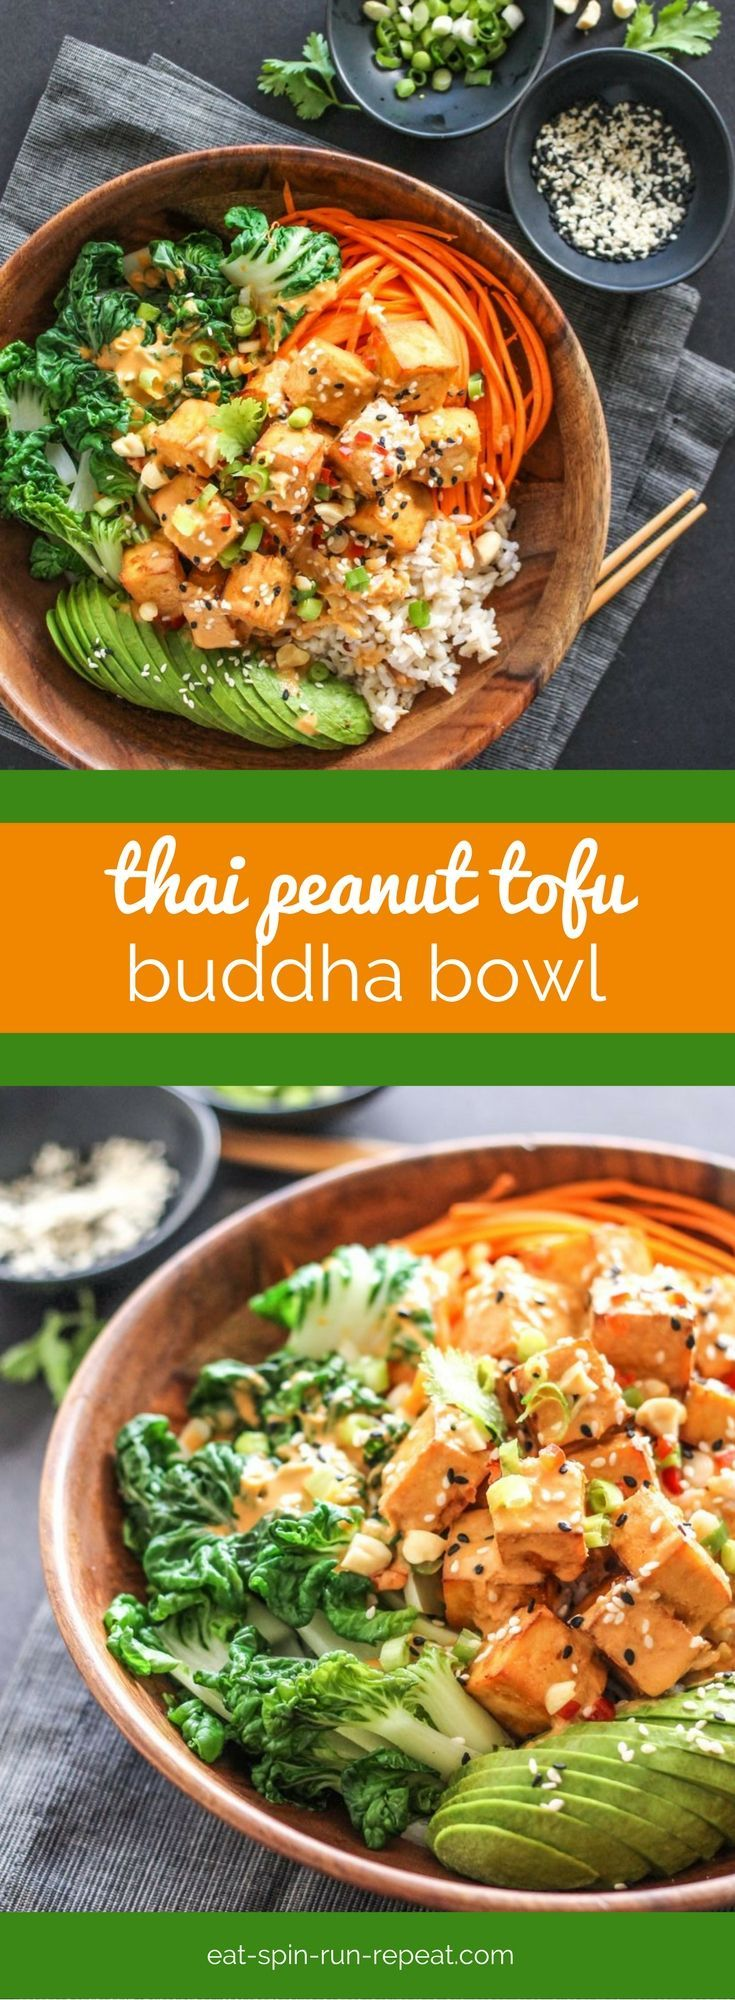 5532ba0e60aaf5938d2cc54fc469dae3  just be vegan friendly Thai Peanut Tofu Buddha Dish: This vegan friendly dish contains health and nutrition and also ...